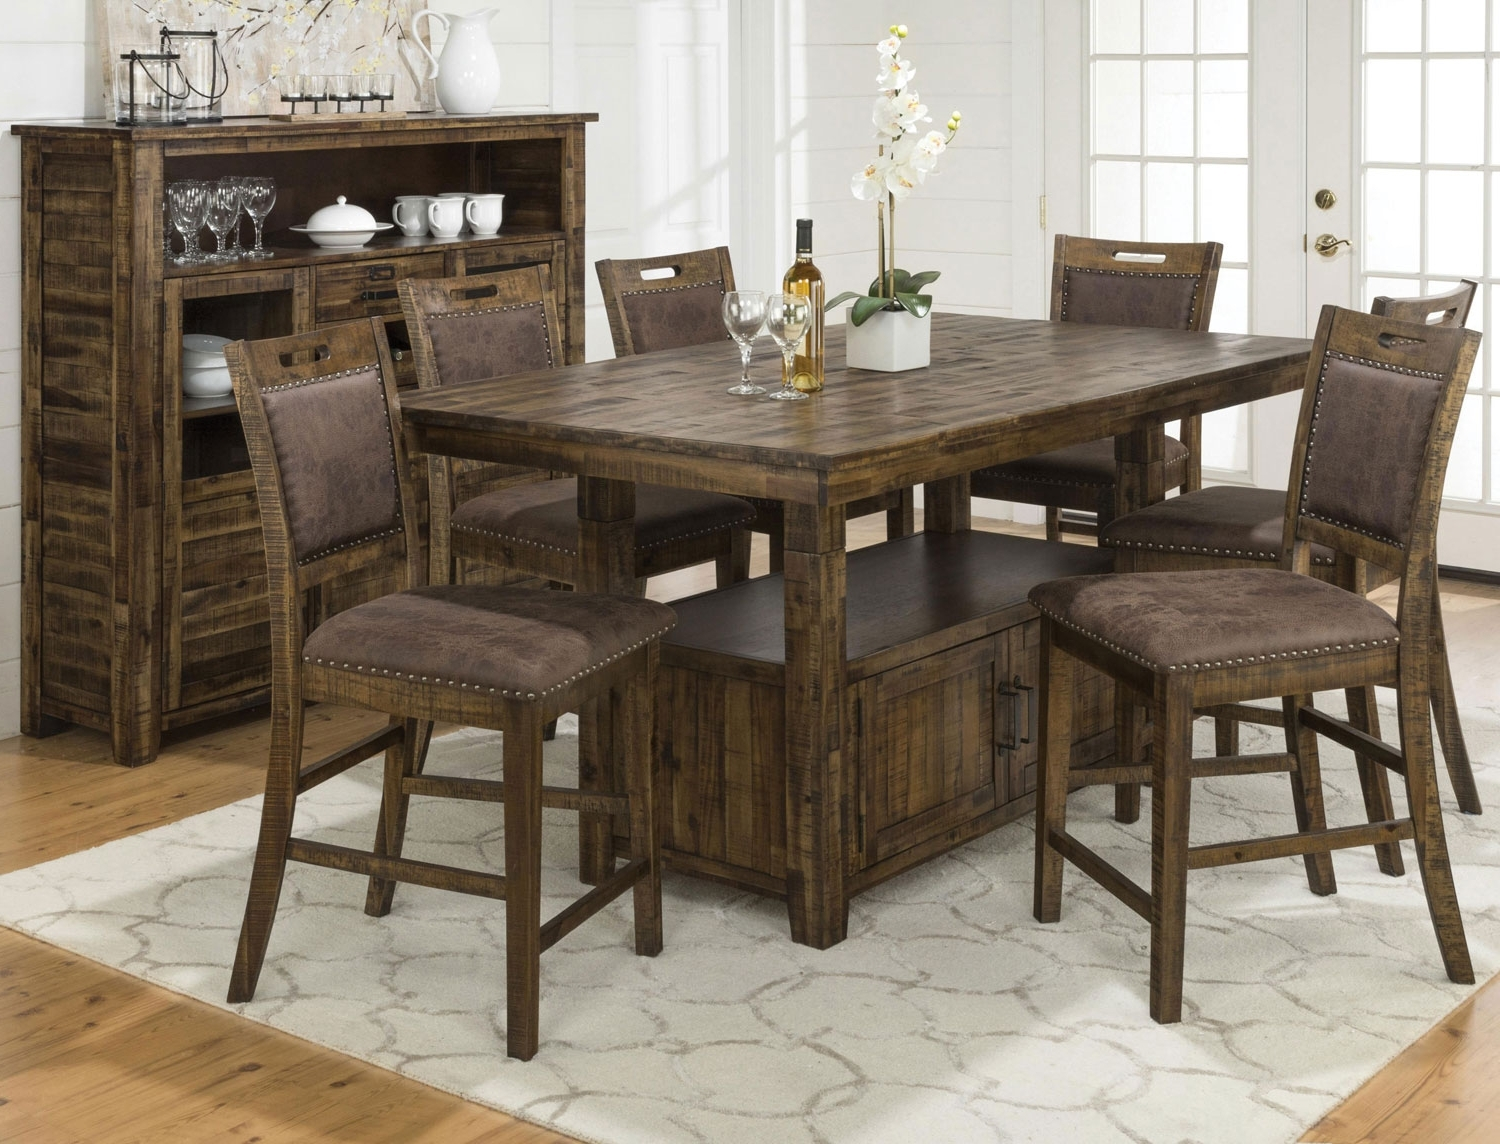 Widely Used Craftsman 7 Piece Rectangle Extension Dining Sets With Arm & Side Chairs Intended For Dining Room (View 24 of 25)